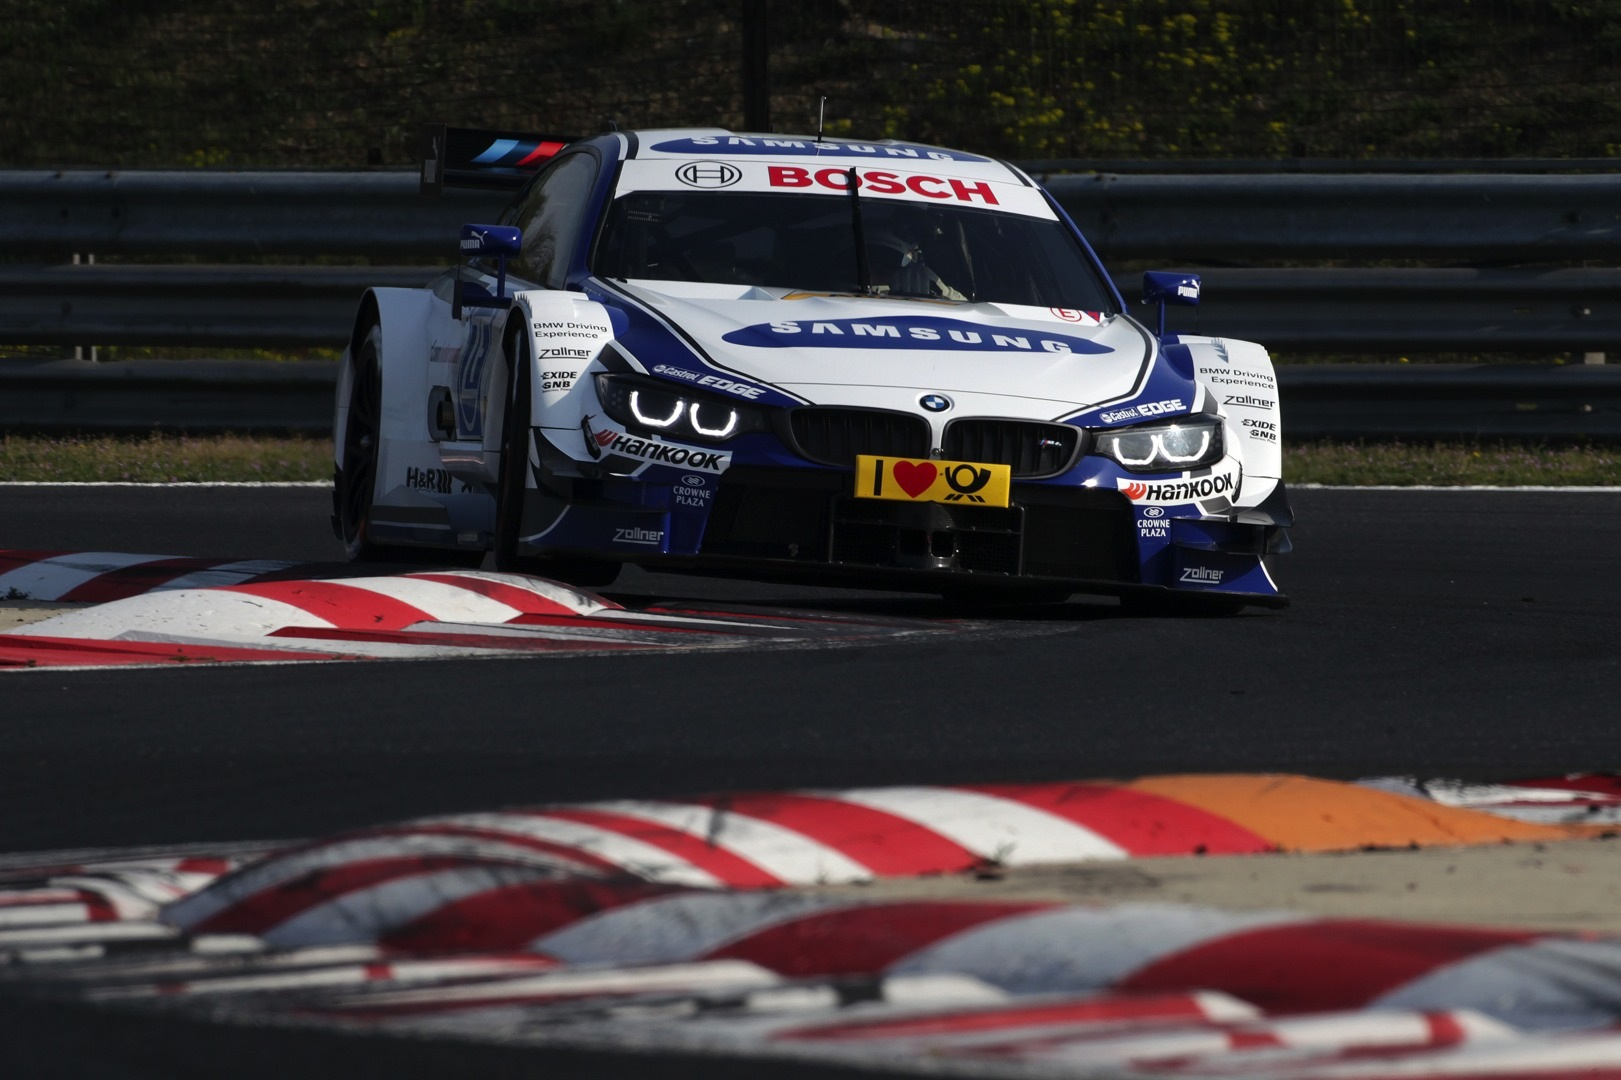 BMW Motorsport Signs Deal with MAHLE for 2014 Season - autoevolution